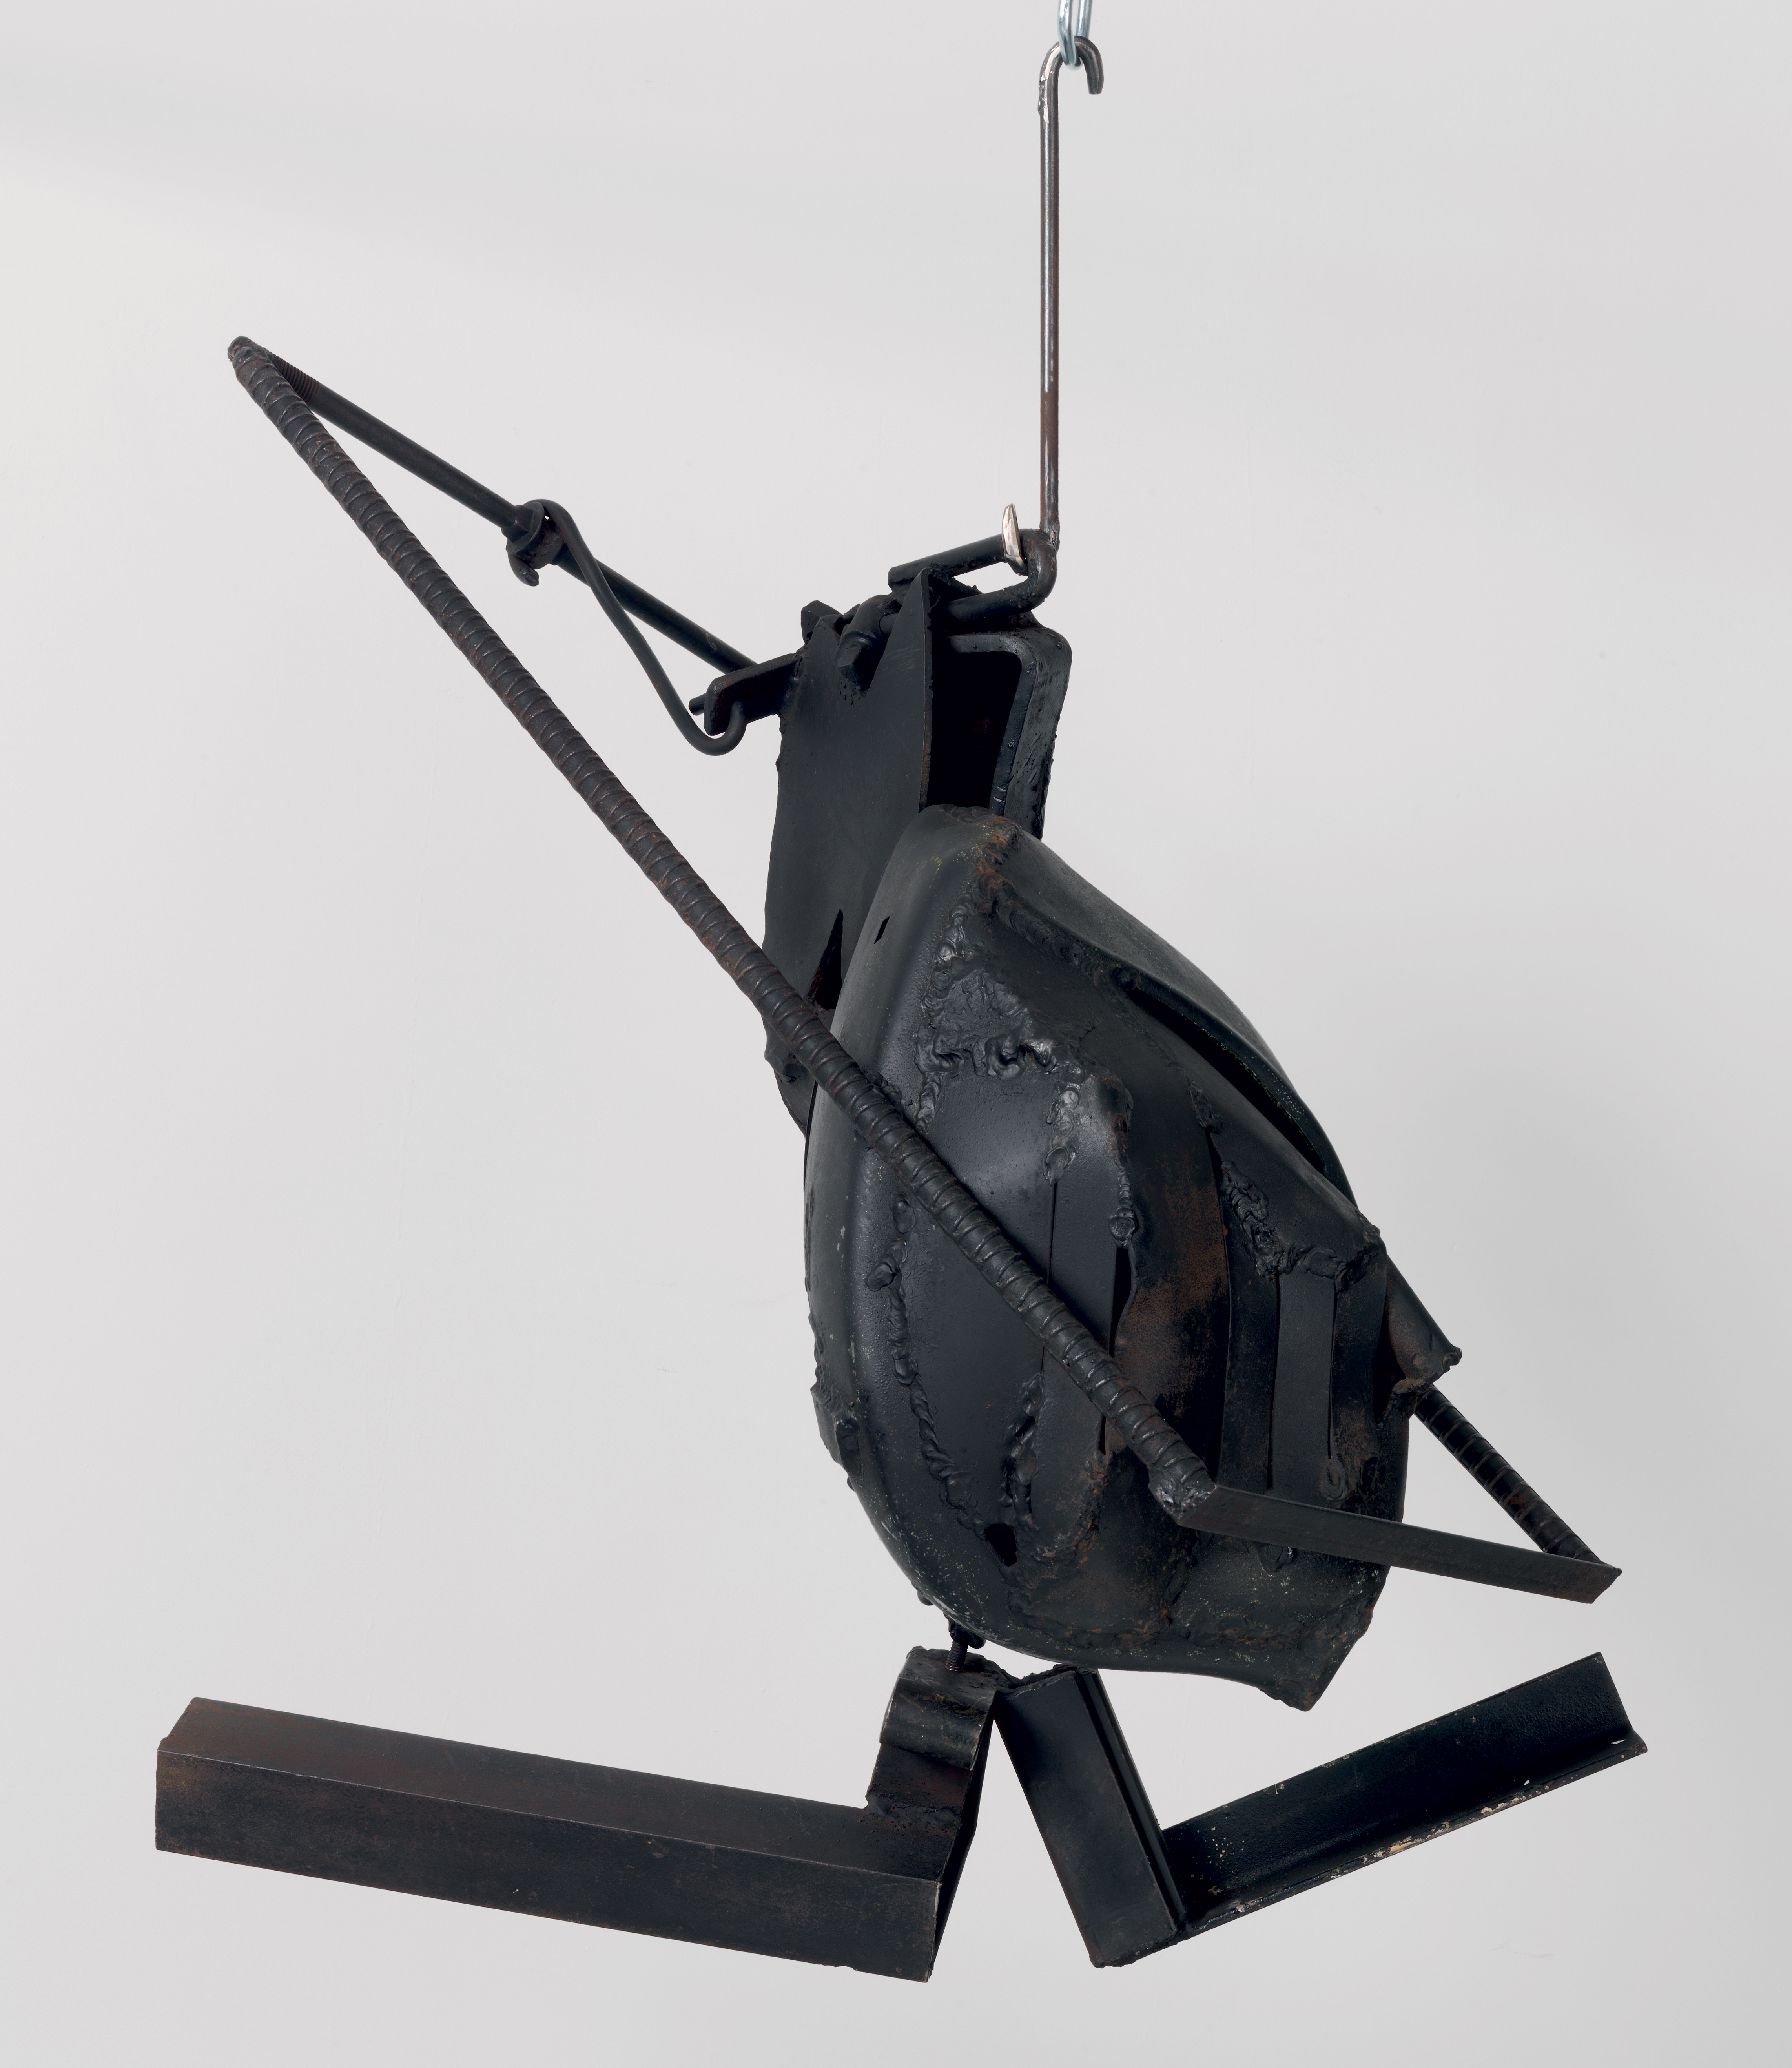 Cotton Hangup, by Melvin Edwards, 1966